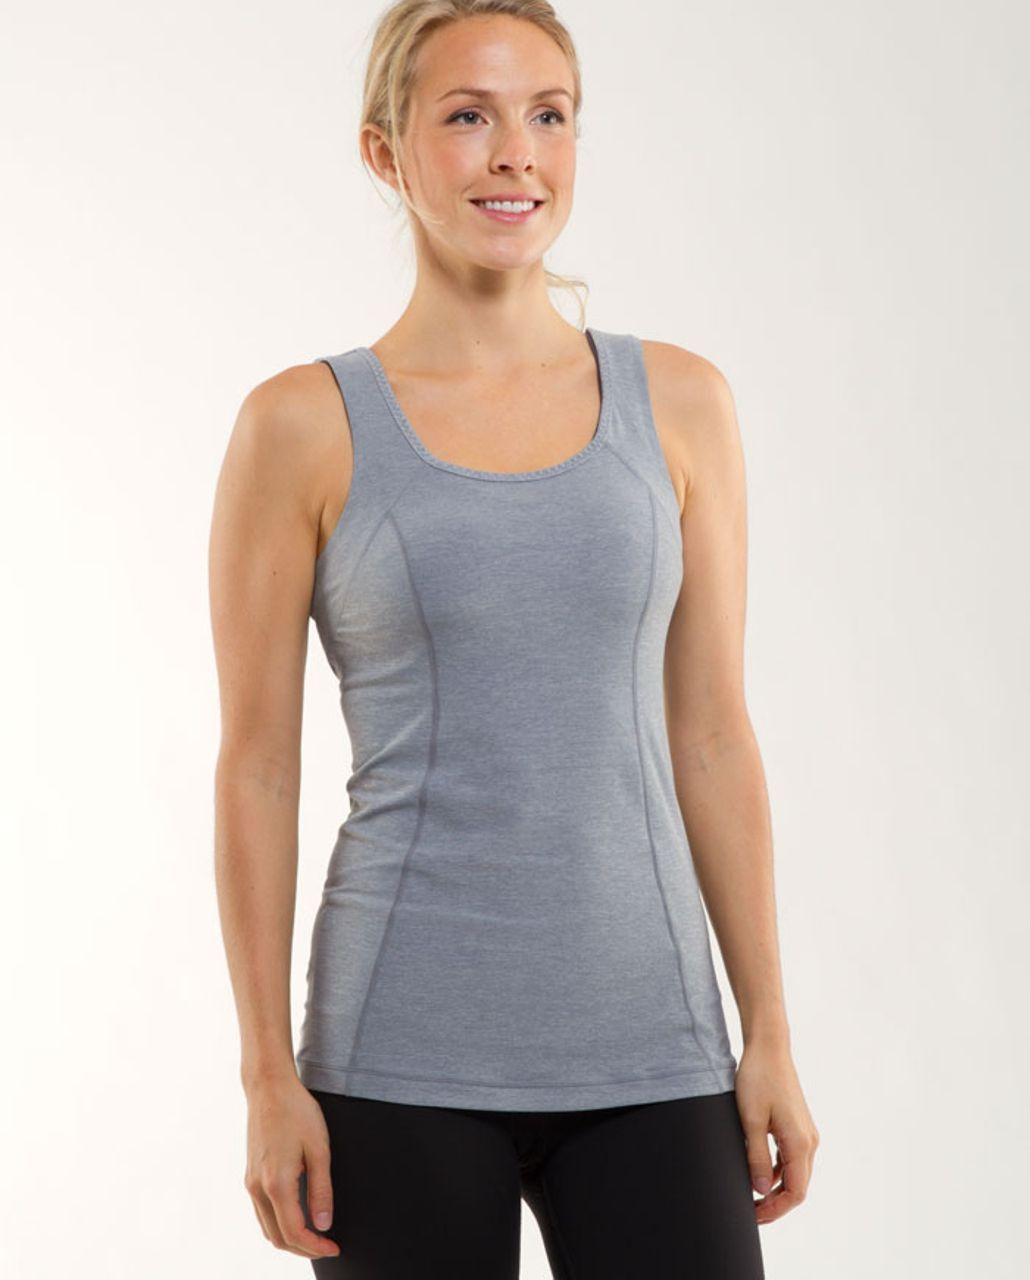 Lululemon Run Free Tank - Heathered Blurred Grey